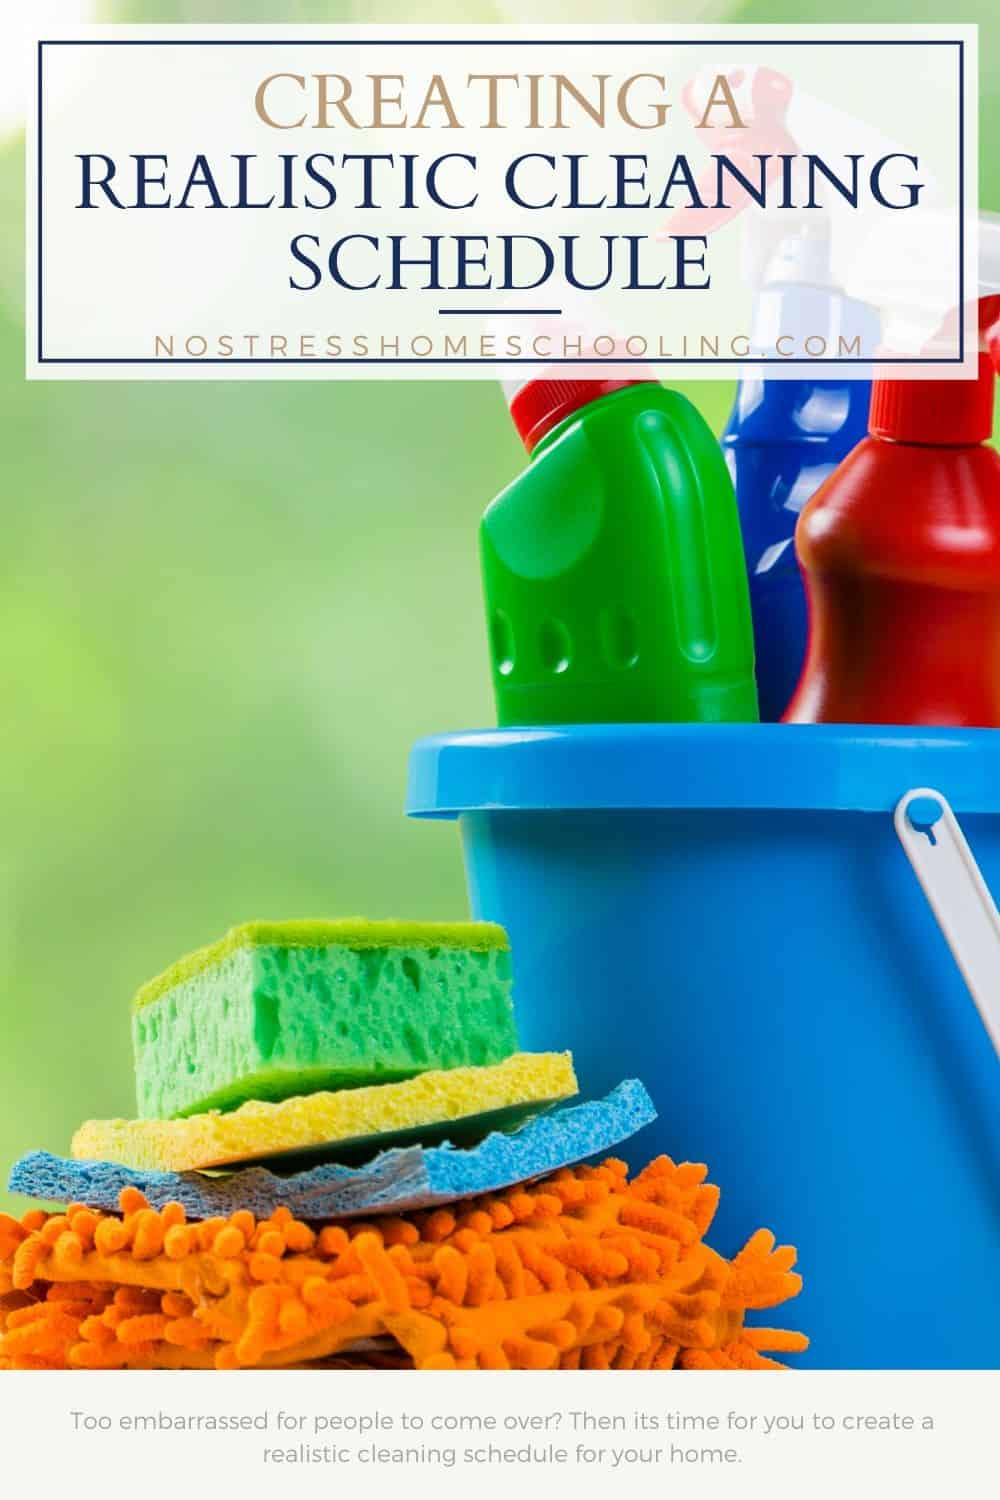 Tired of feeling as if you are falling behind with your cleaning routine? Then it's time for you to create a realistic cleaning schedule.